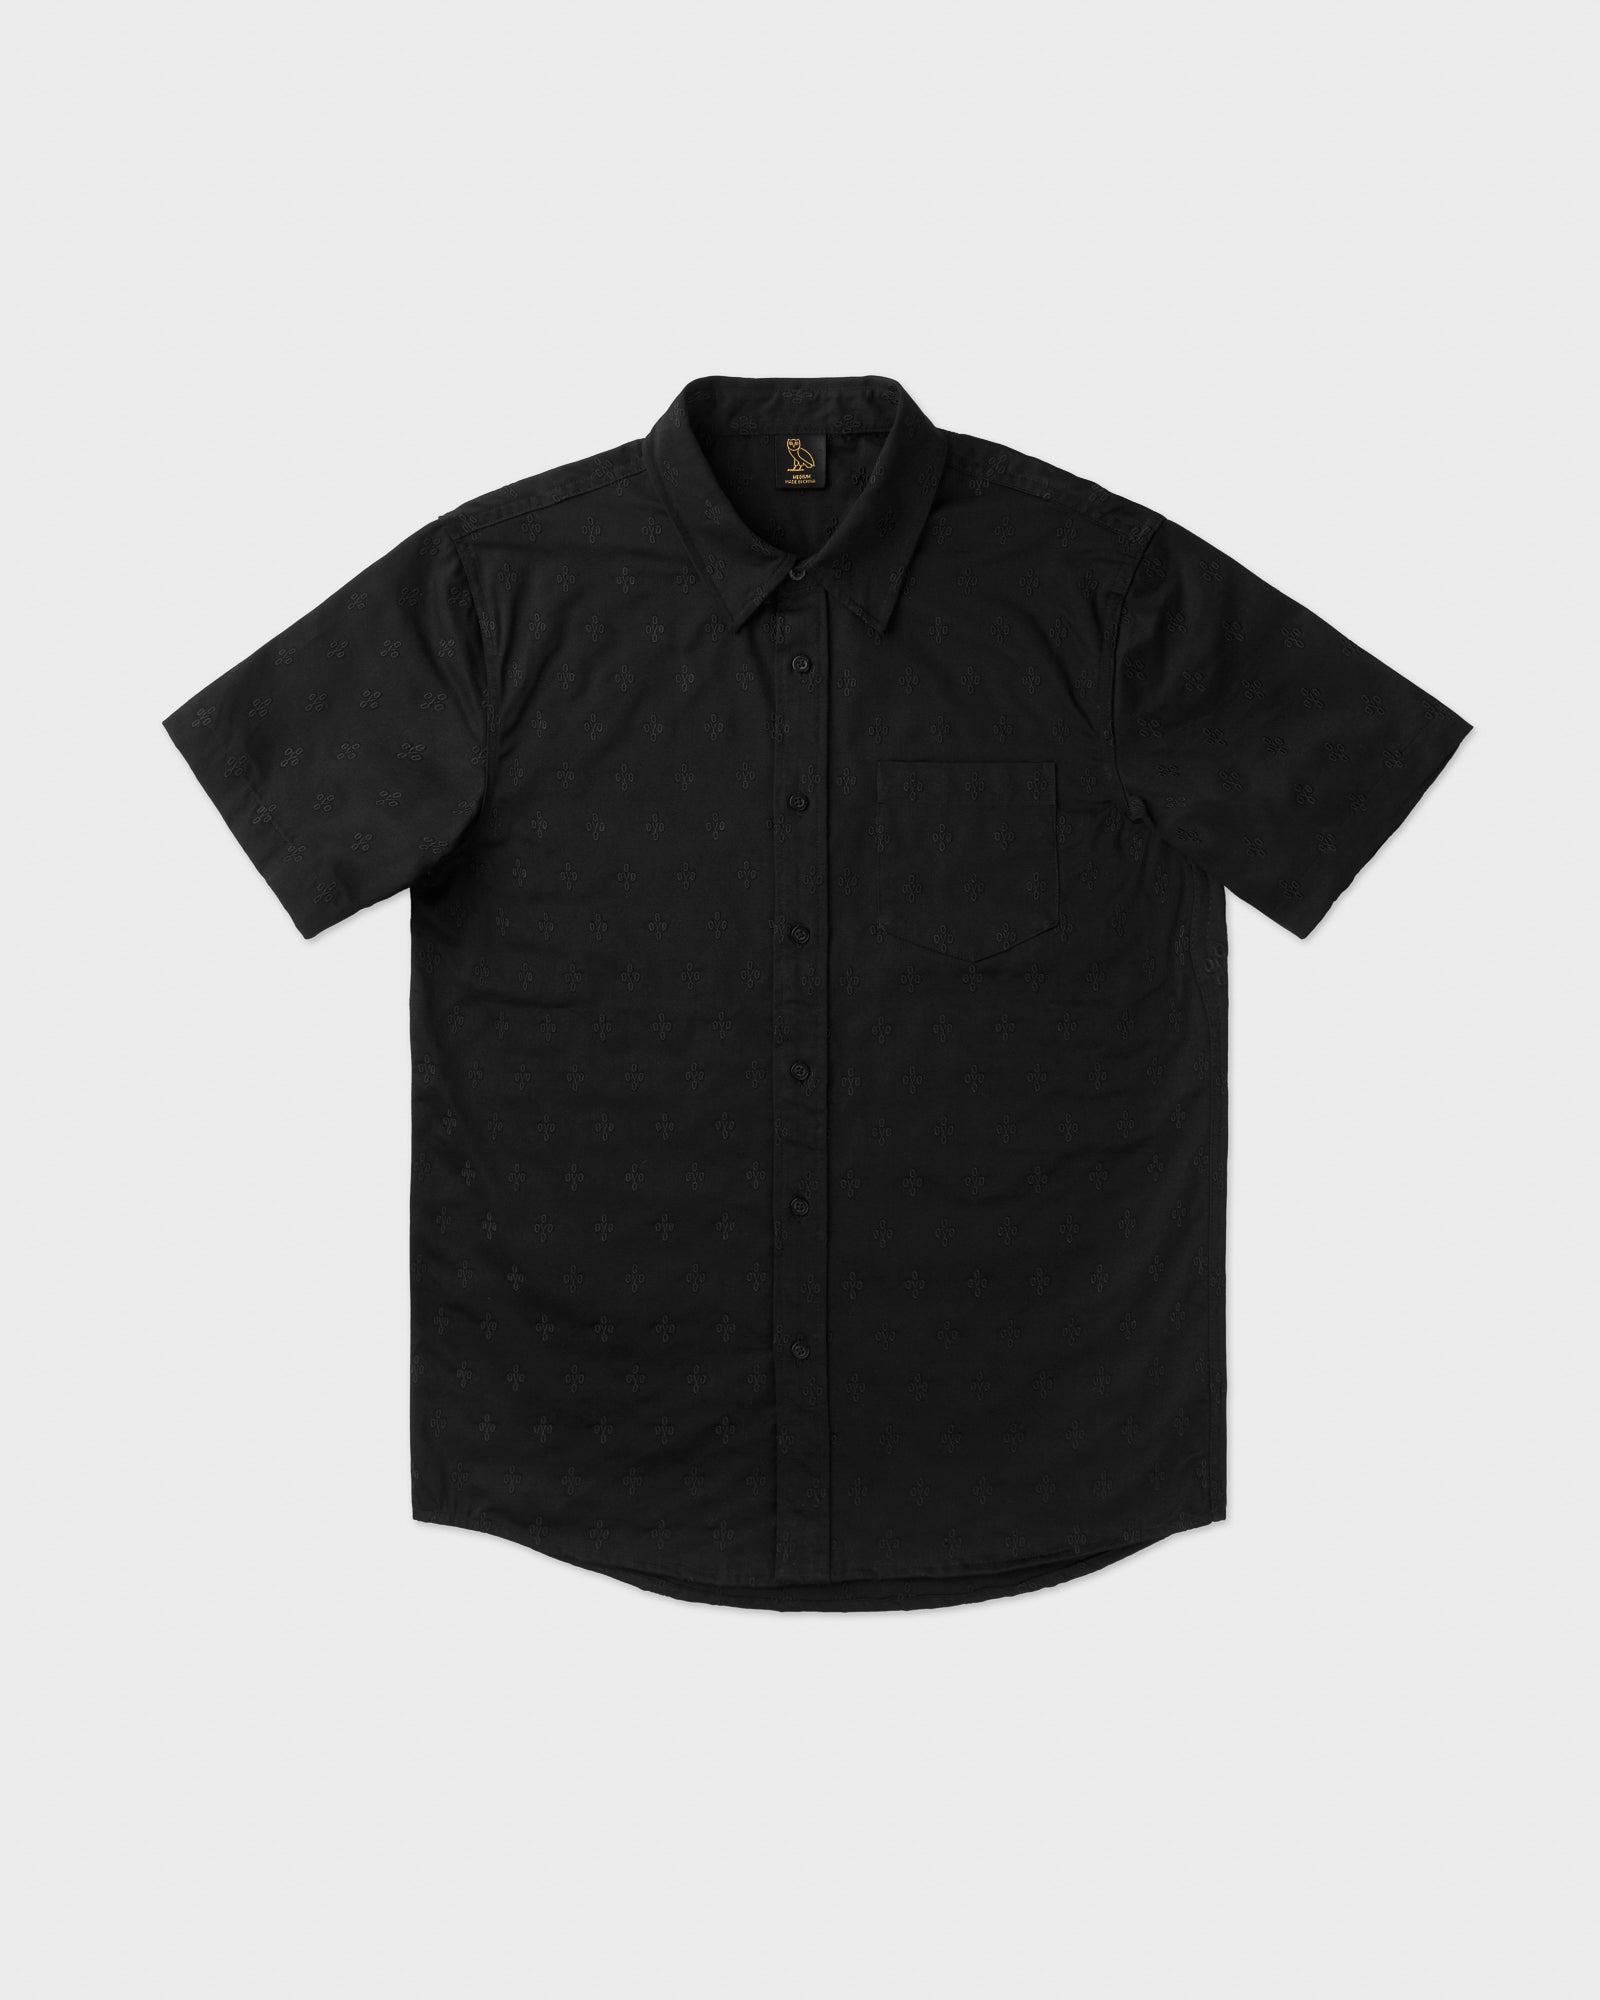 MONOGRAM EMBROIDERED BUTTON DOWN SHIRT - BLACK IMAGE #1